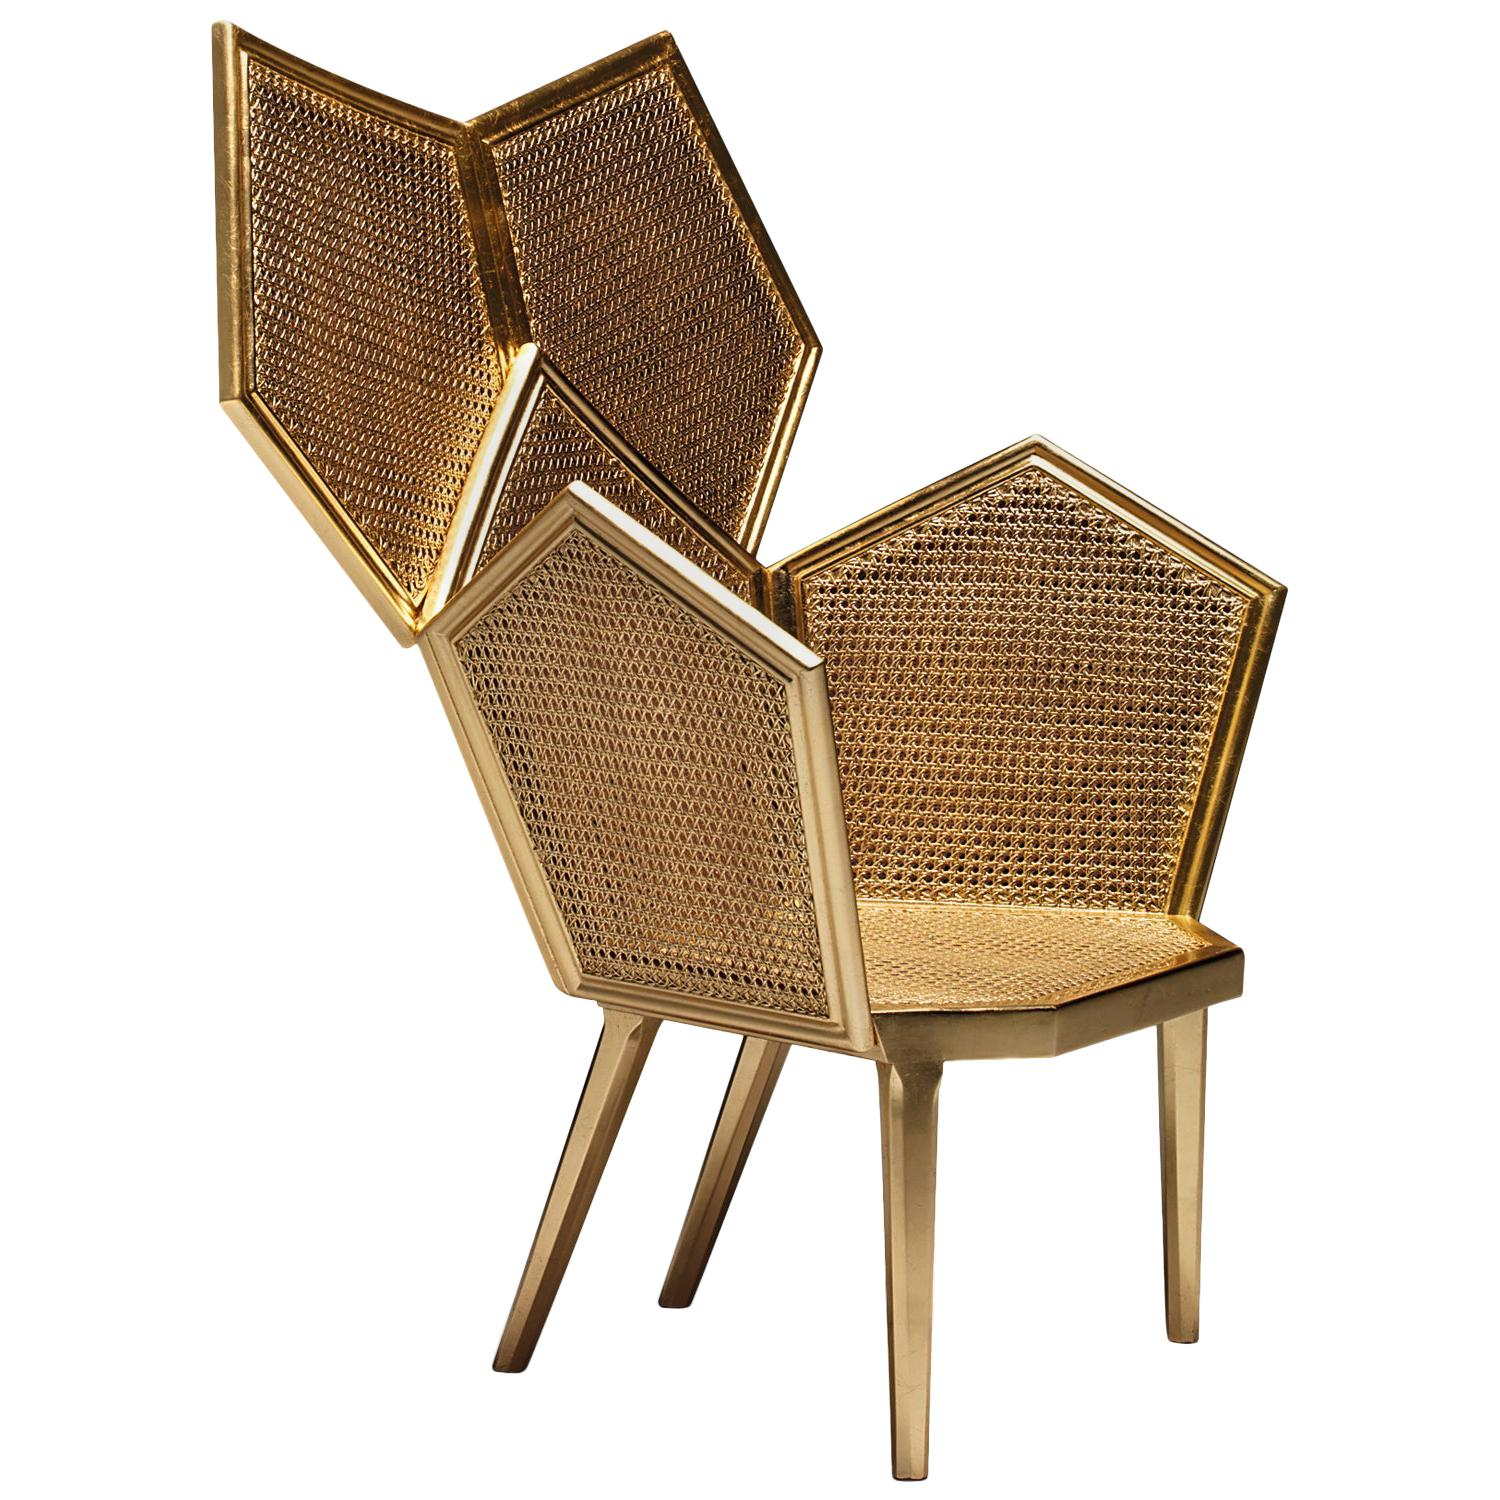 LUI 5/A Double Cane Armchair in Gold Leaf Finish